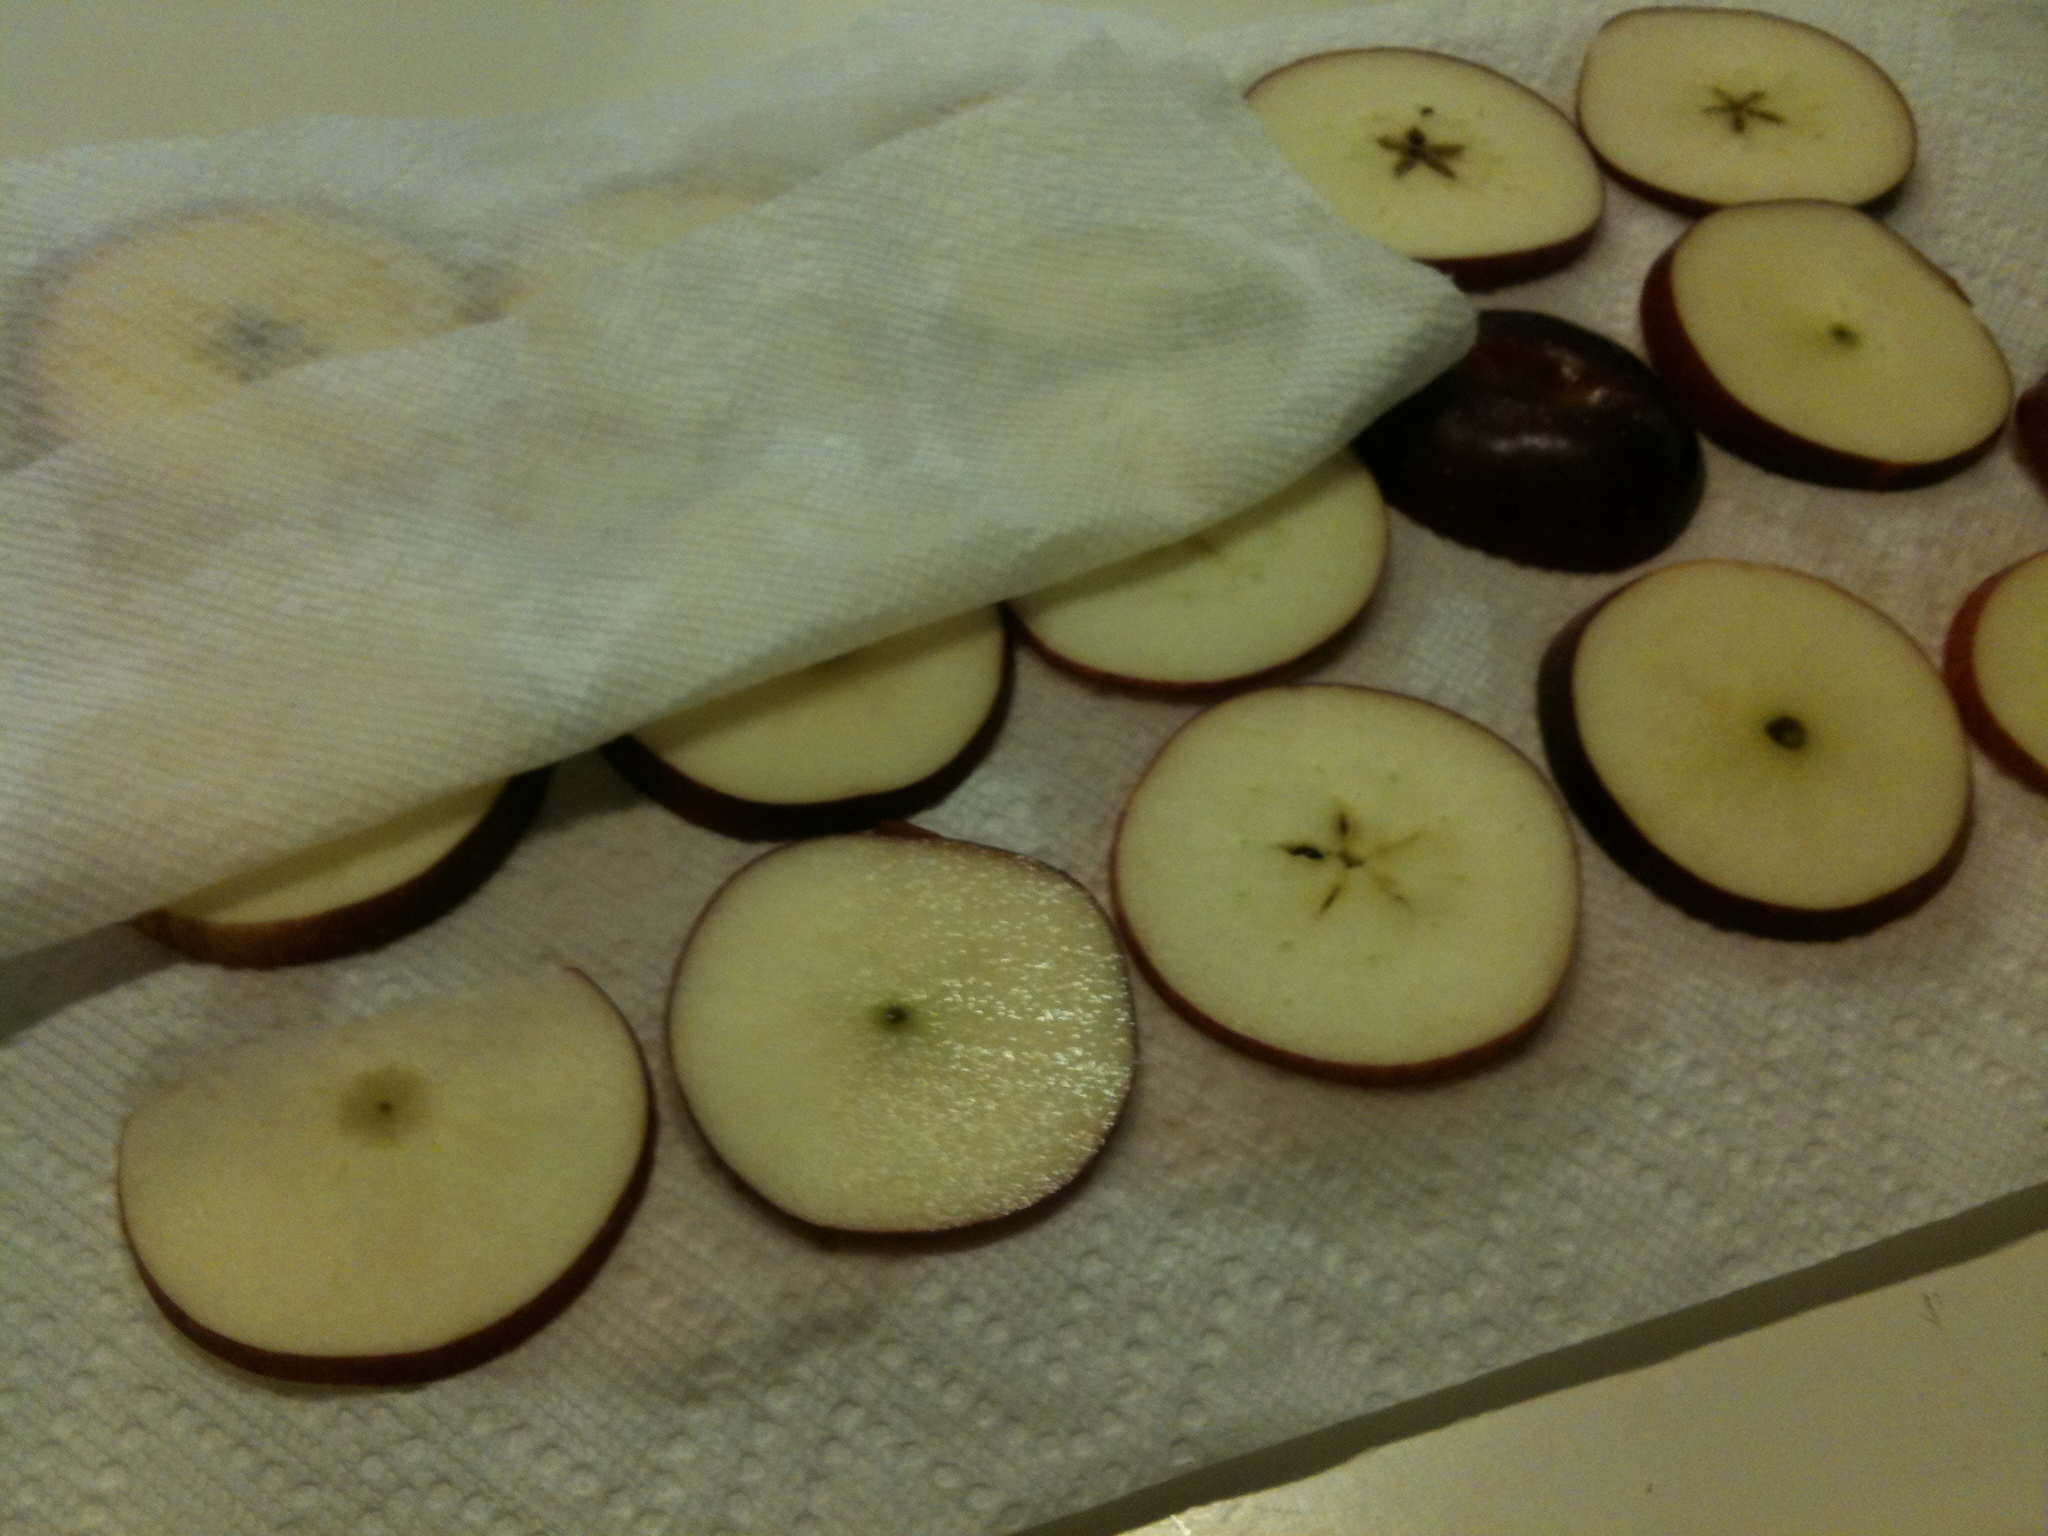 place fruit on a paper towel and pat dry with another paper towel